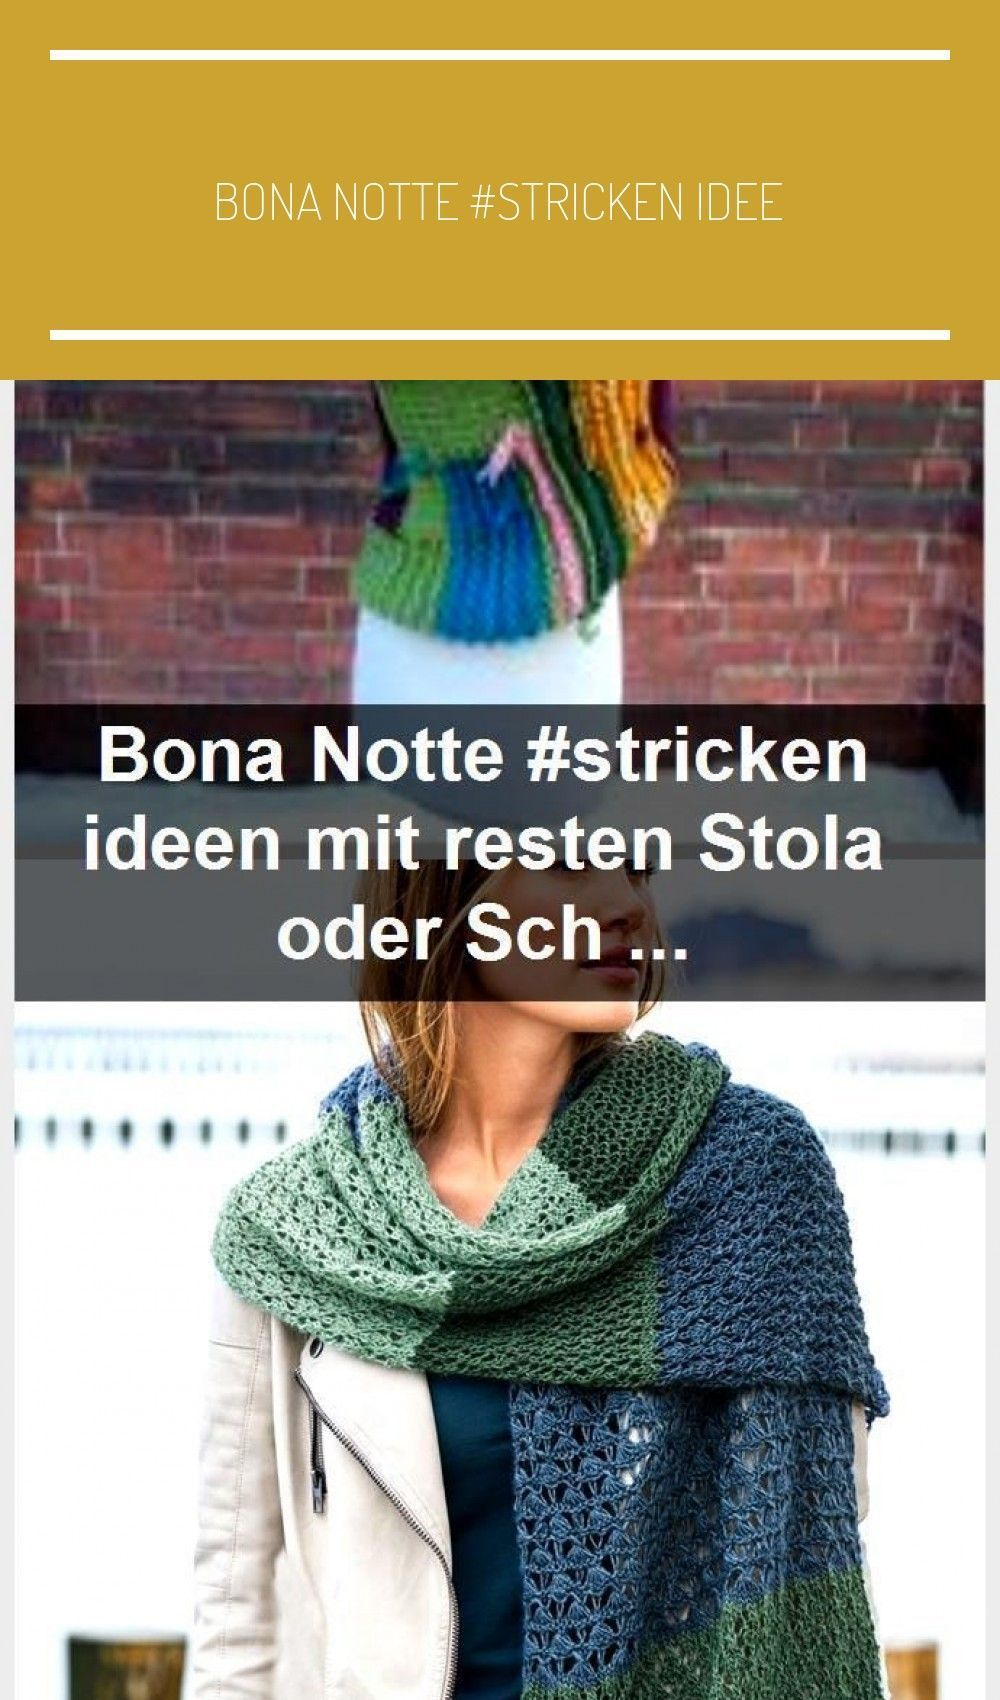 Photo of Bona Notte stricken idee, #Bona #Idee #Notte #stricken #Strickideenauswollresten…